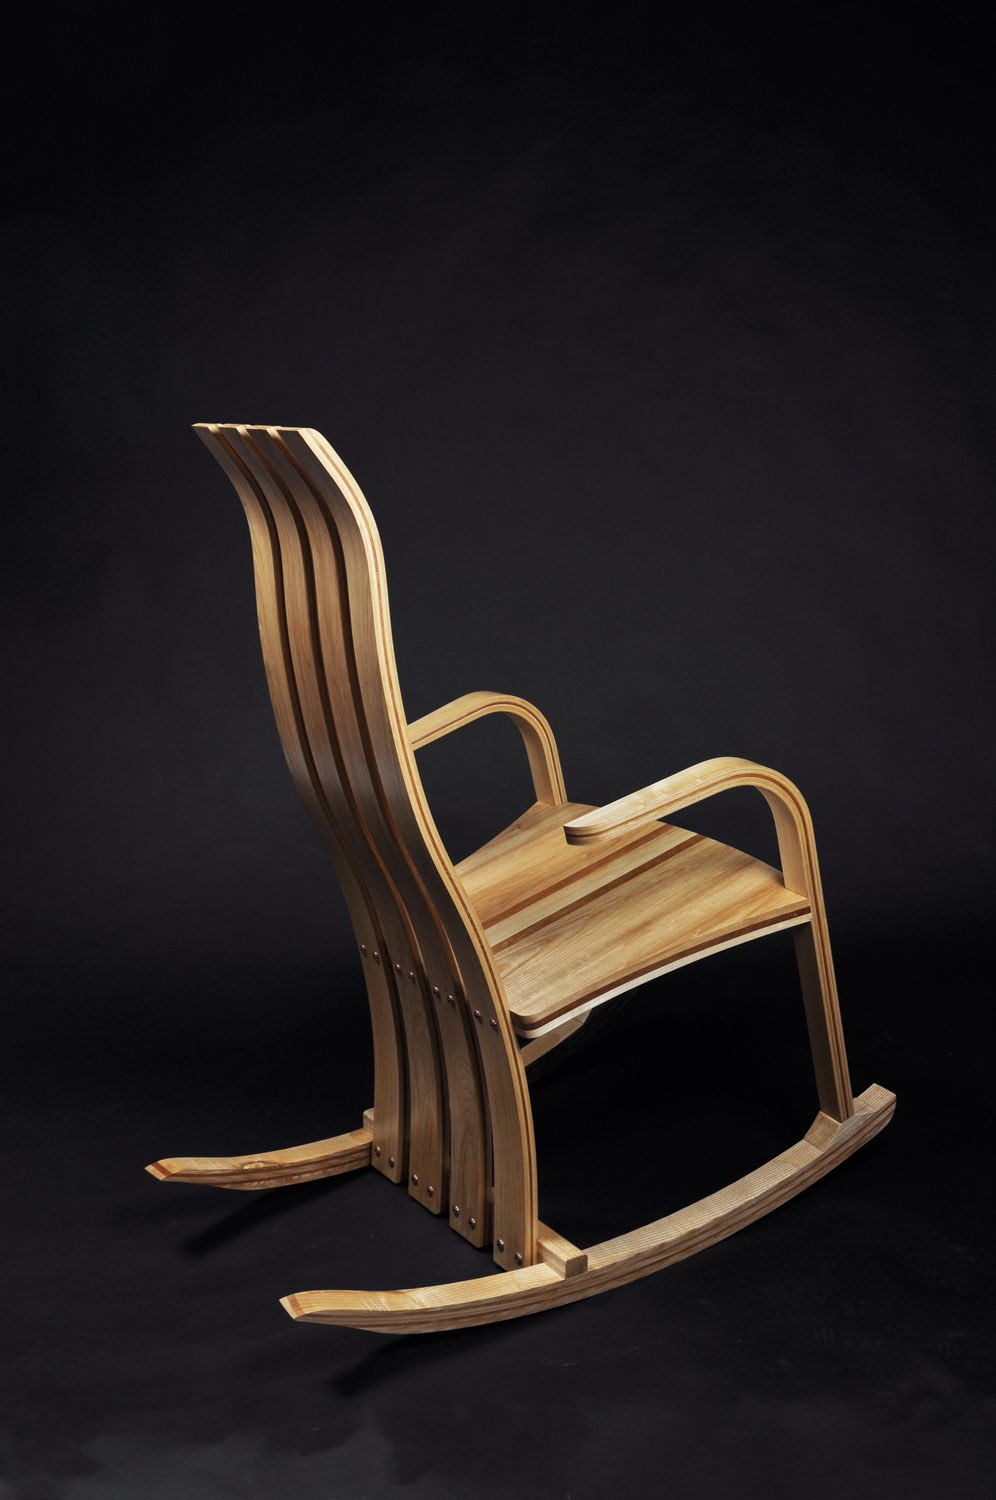 Drift, Rocking Chair with Ash and Cherry    by Robert Gorman, Kilkenny. Photo by Geraldine O'Brien